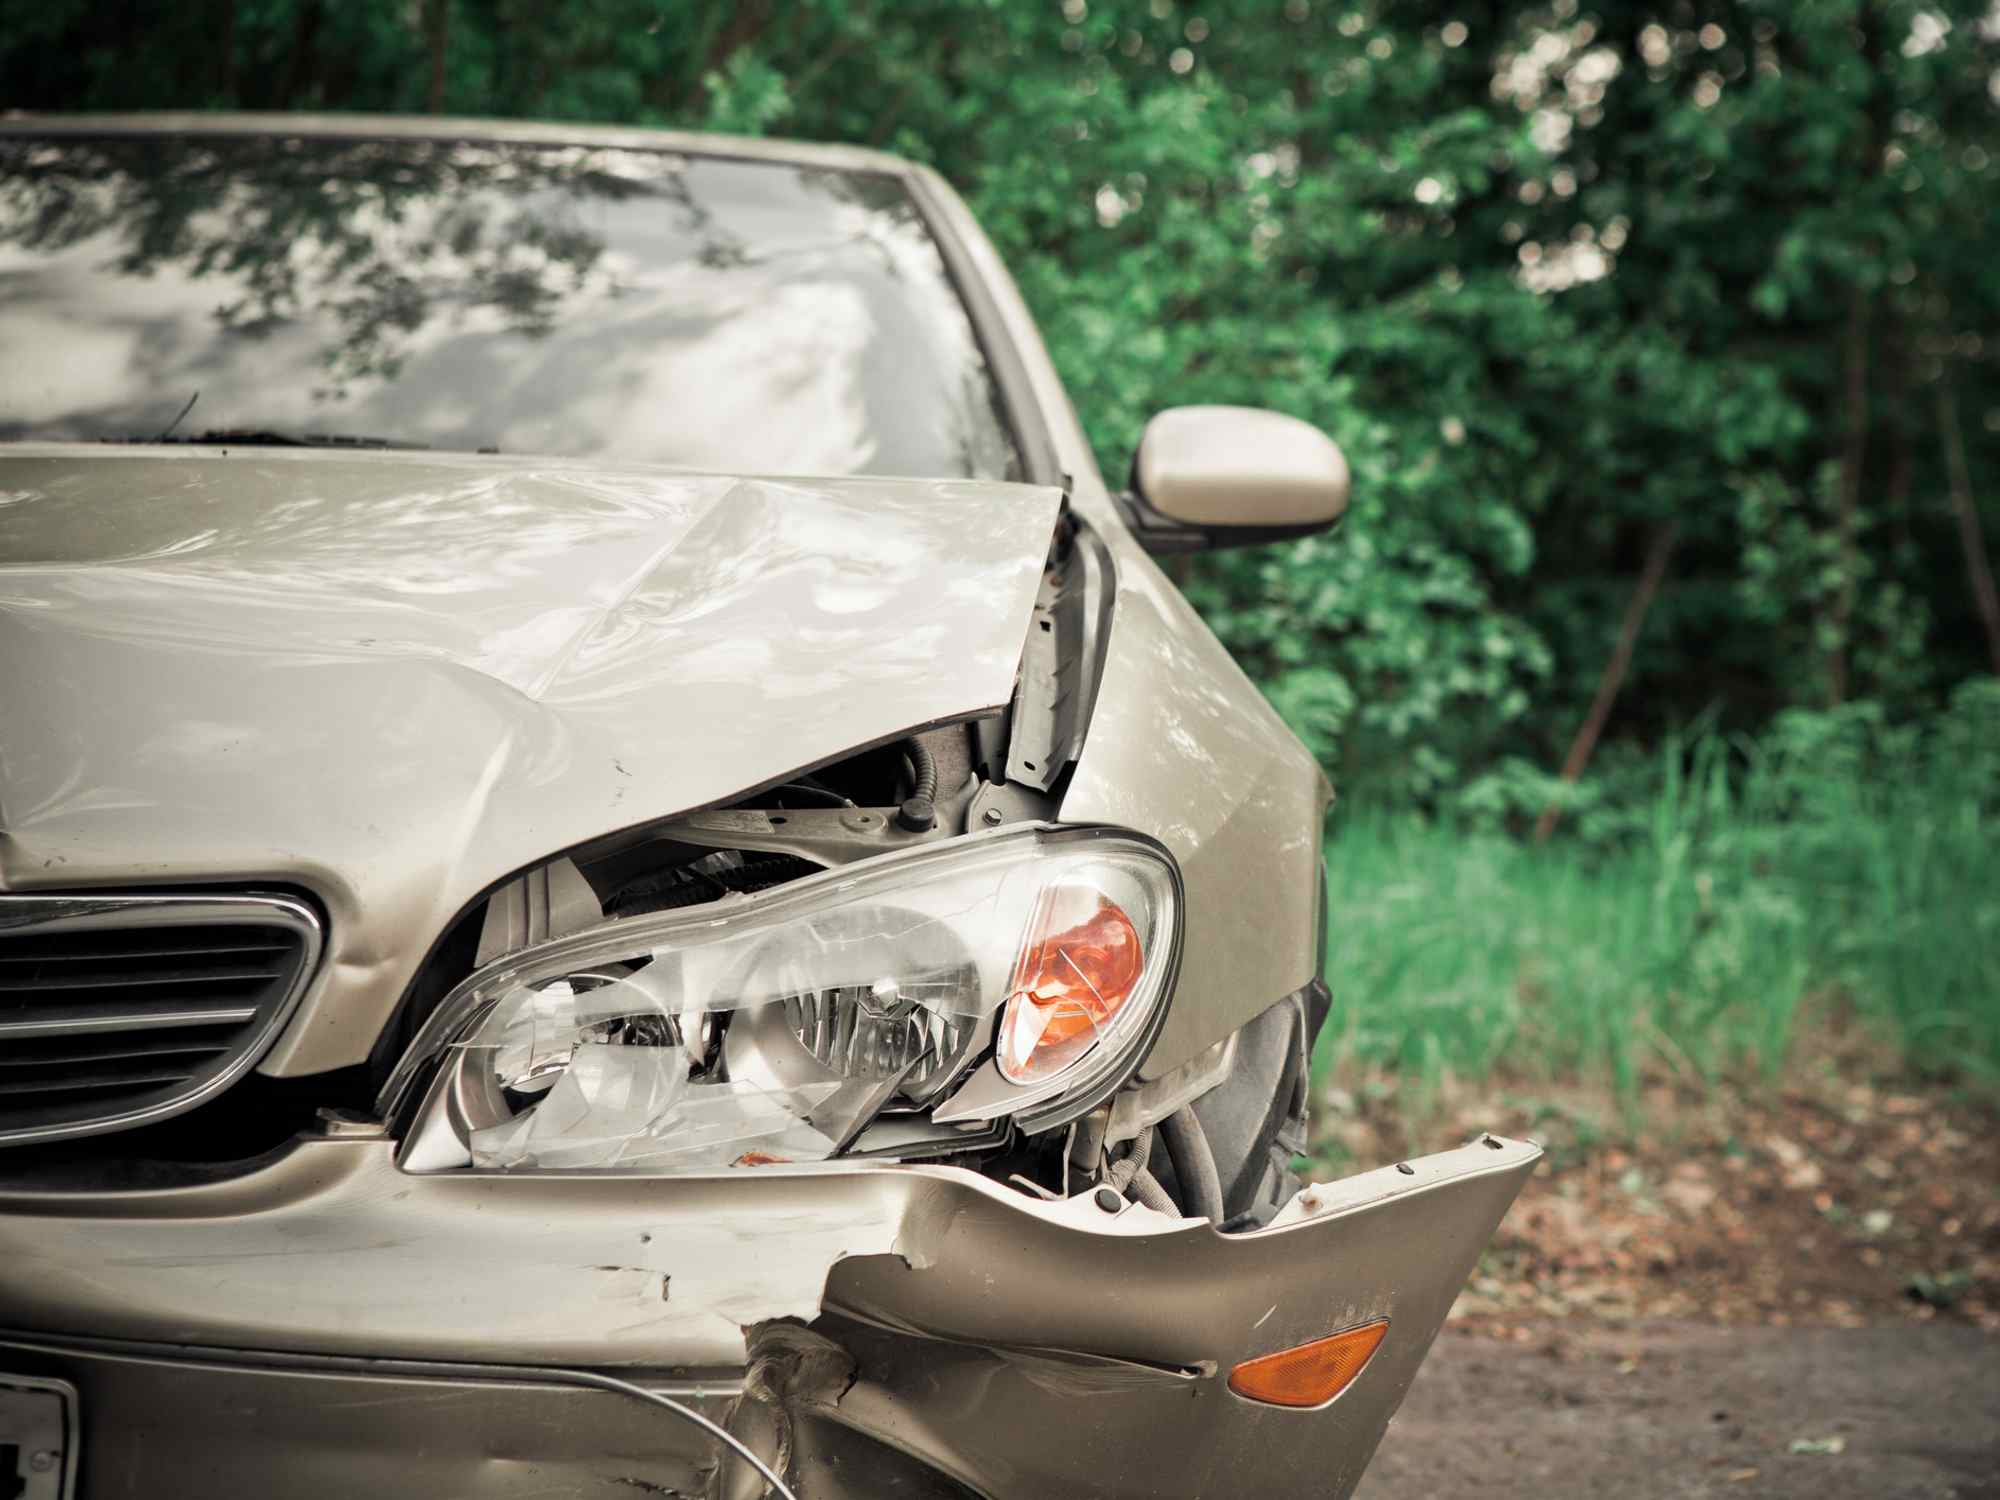 Front Bumper Replacement Cost >> Estimated Costs For 5 Common Auto Body Repairs